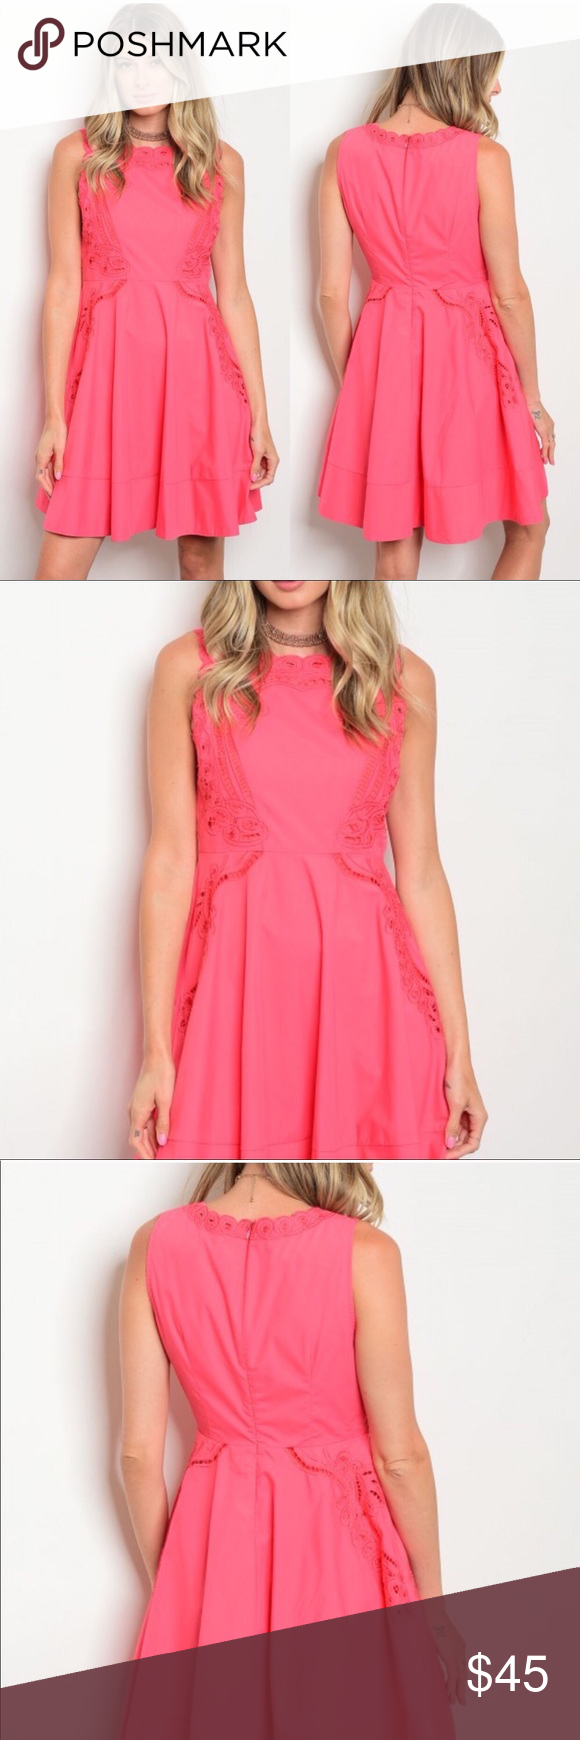 Beautiful Summer Coral Dresses Coral Colored Dresses Boutique Dresses Summer Coral Summer Dresses